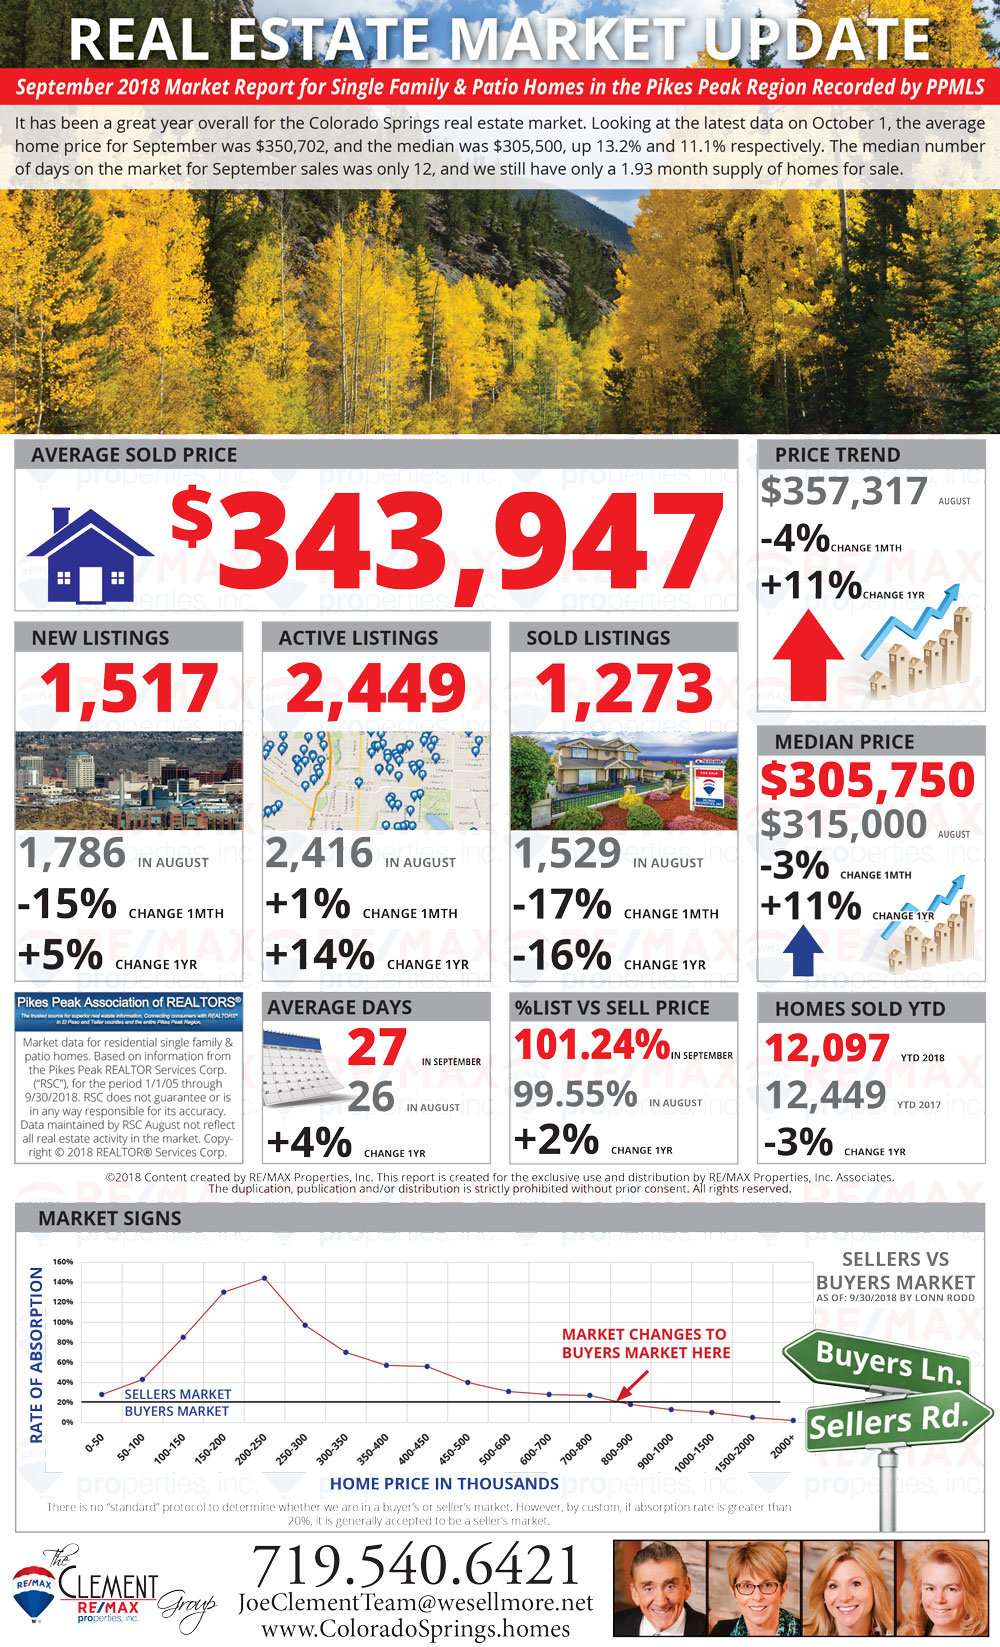 September 2018 Market Update - Colorado Springs Real Estate